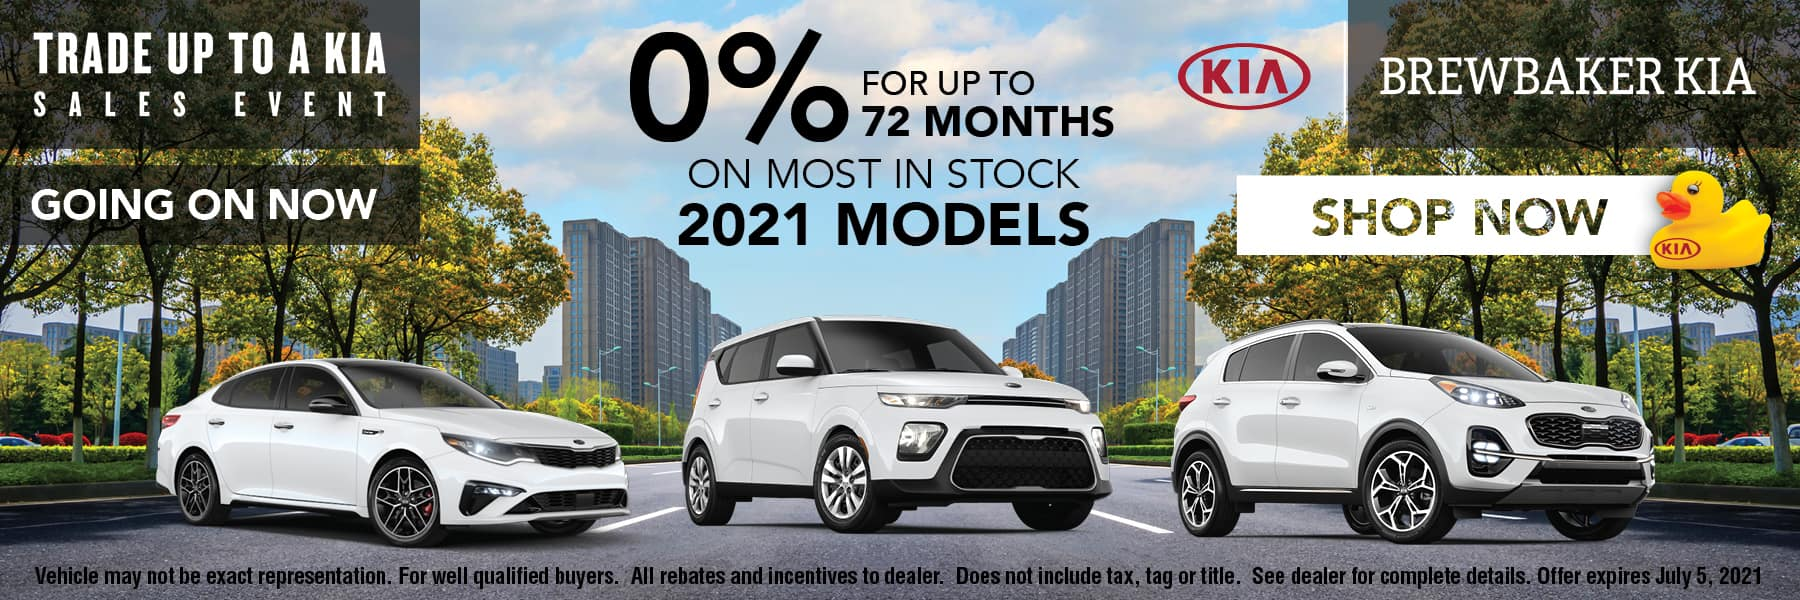 Kia_0For72months_June_1800x600